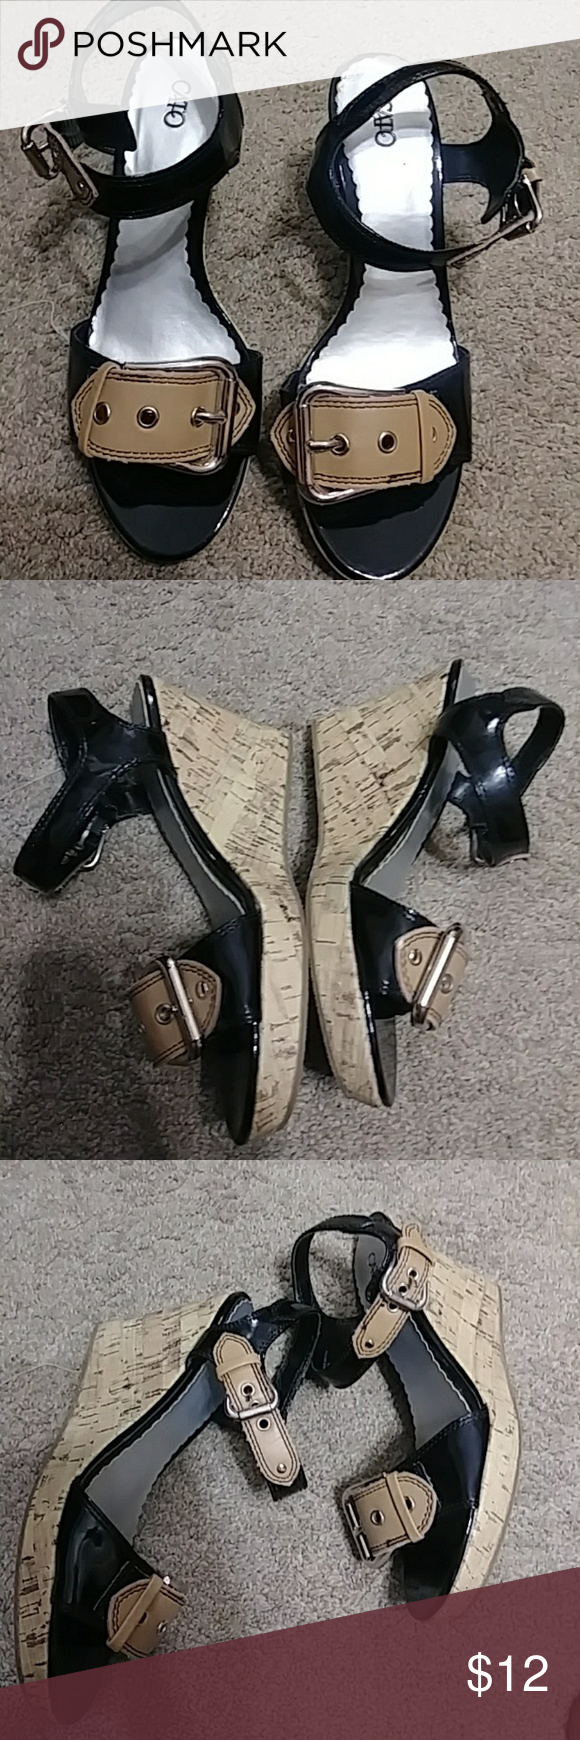 5577bf30168c Cato wedged sandals shoes size 8 Gently used The paper on the soul is  coming off as shown in picture so selling cheap. SIZE 8 Cato Shoes Wedges